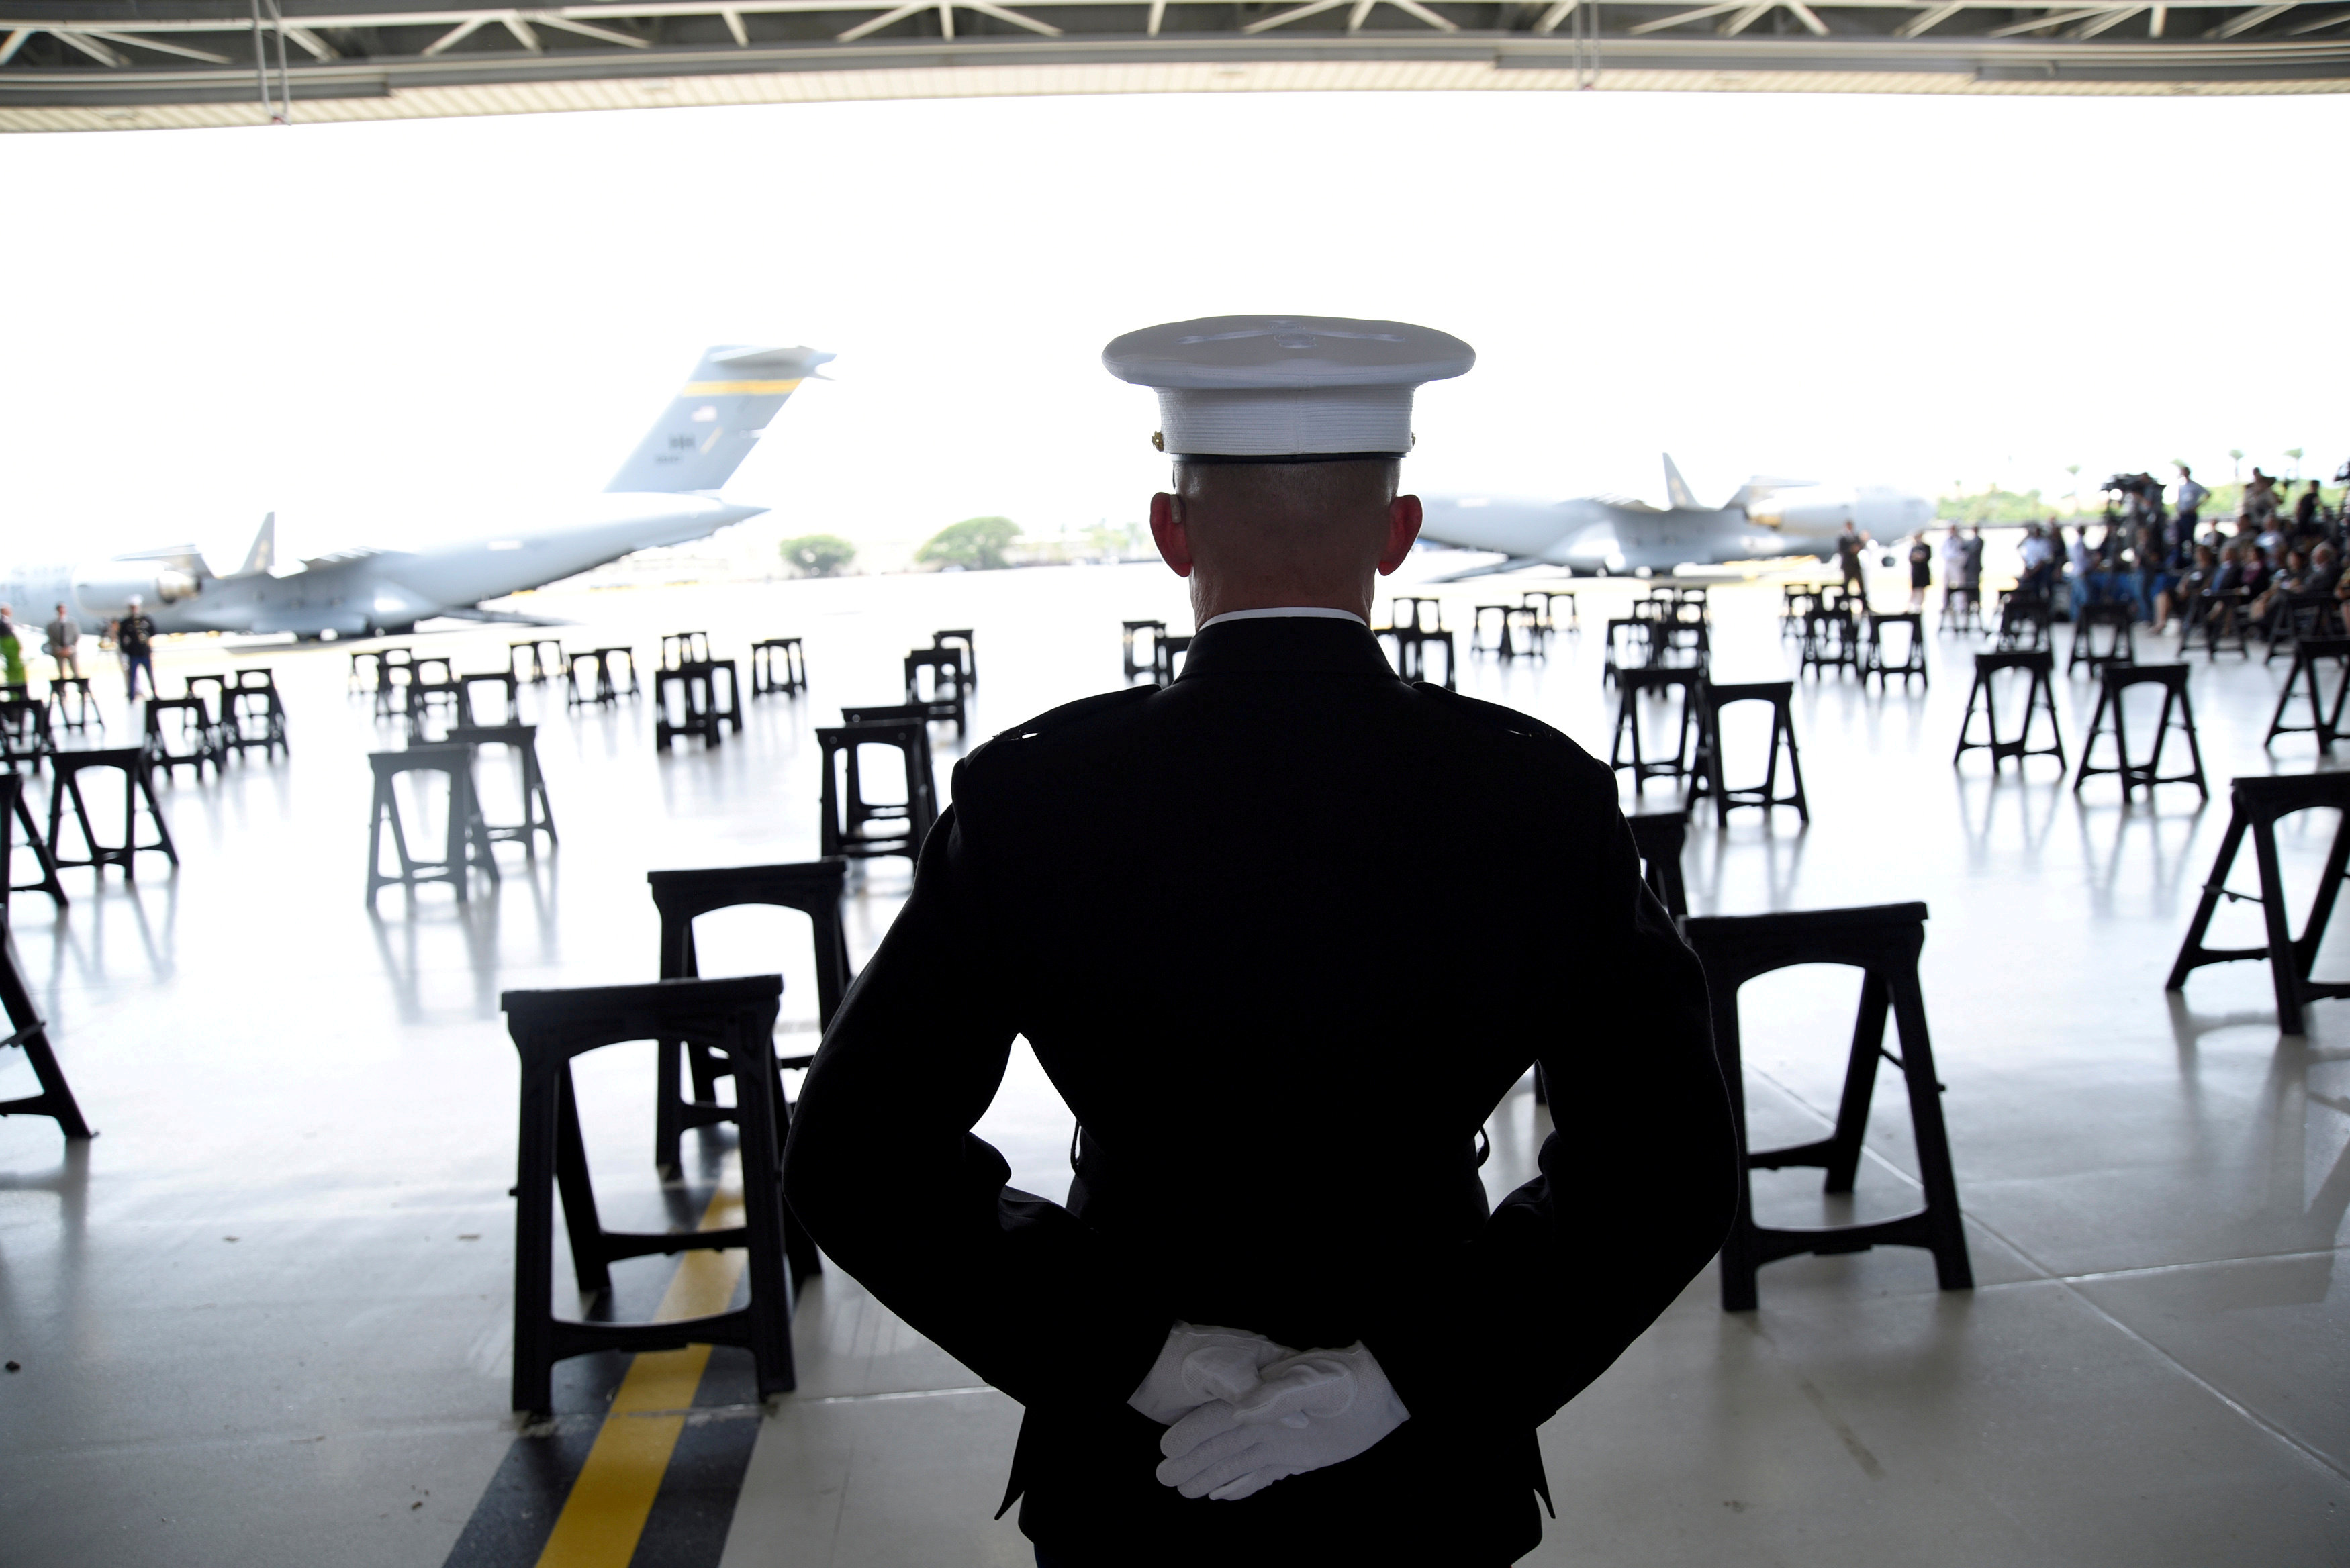 FILE PHOTO: A U.S. Marine stands as caskets containing the remains of American servicemen from the Korean War handed over by North Korea arrive at Joint Base Pearl Harbor-Hickam in Honolulu, Hawaii, Aug. 1, 2018. REUTERS/Hugh Gentry/File Photo